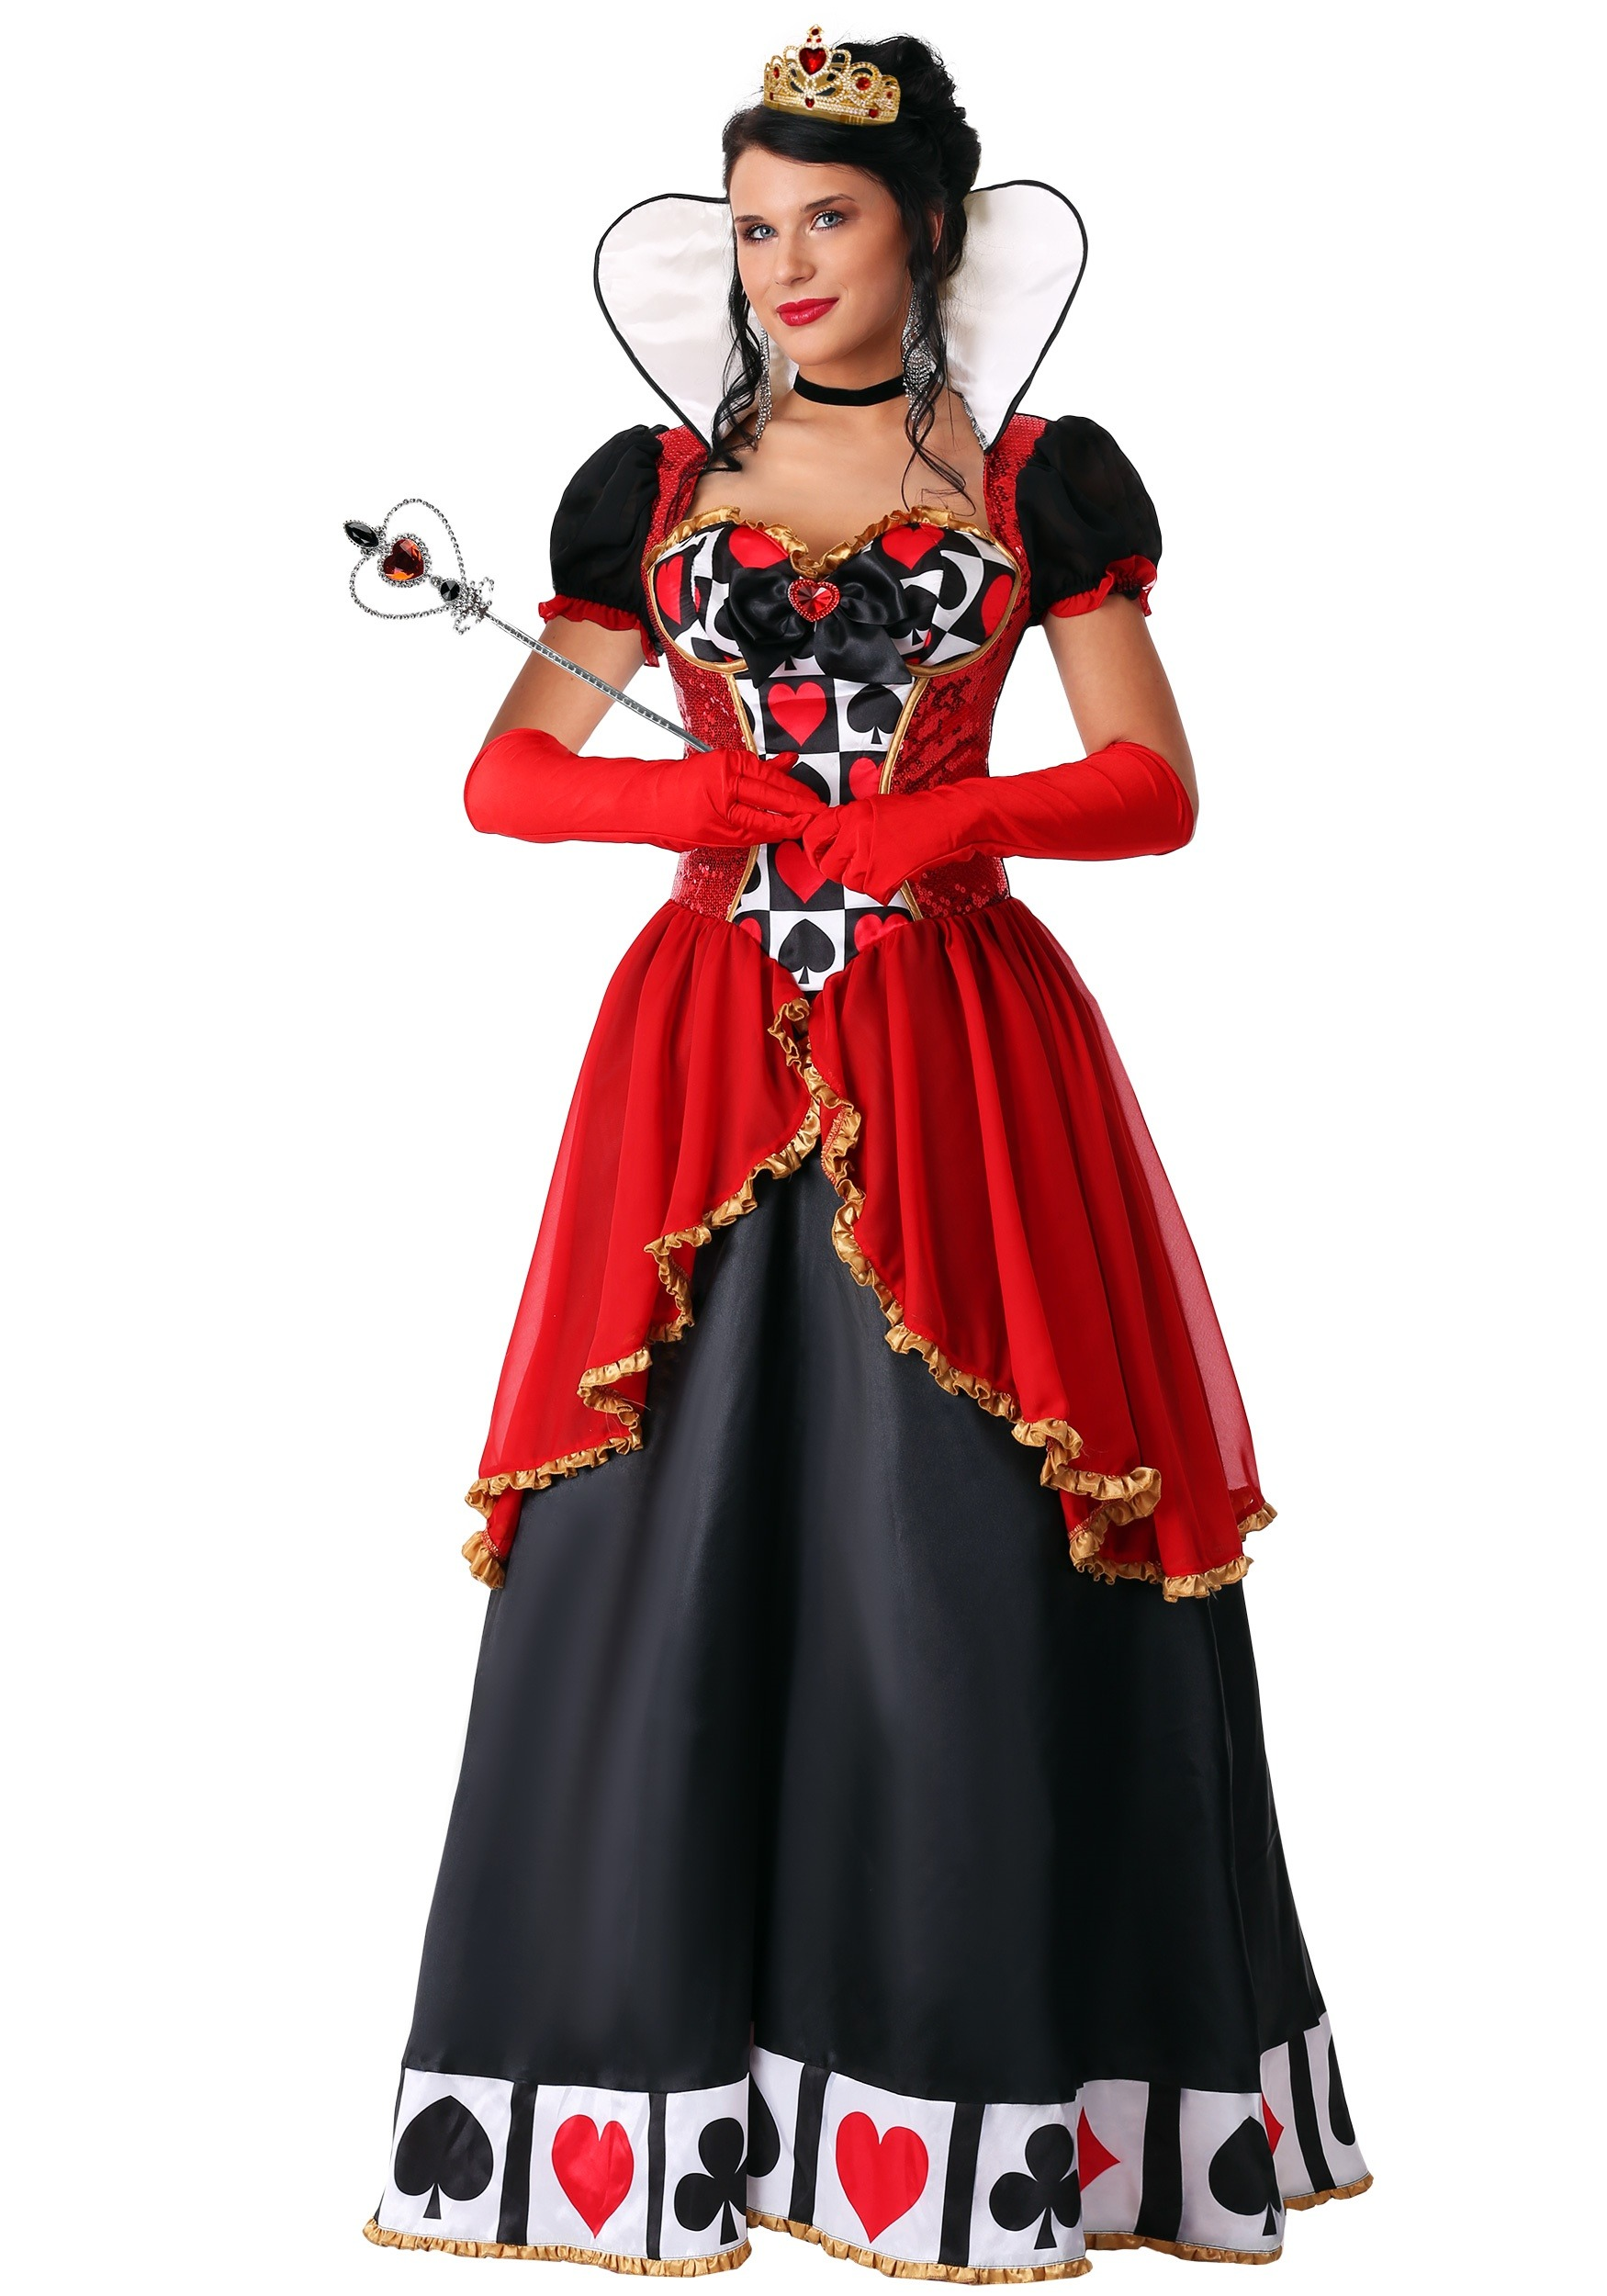 supreme queen of hearts costume for plus size women 1x 2x 3x. Black Bedroom Furniture Sets. Home Design Ideas